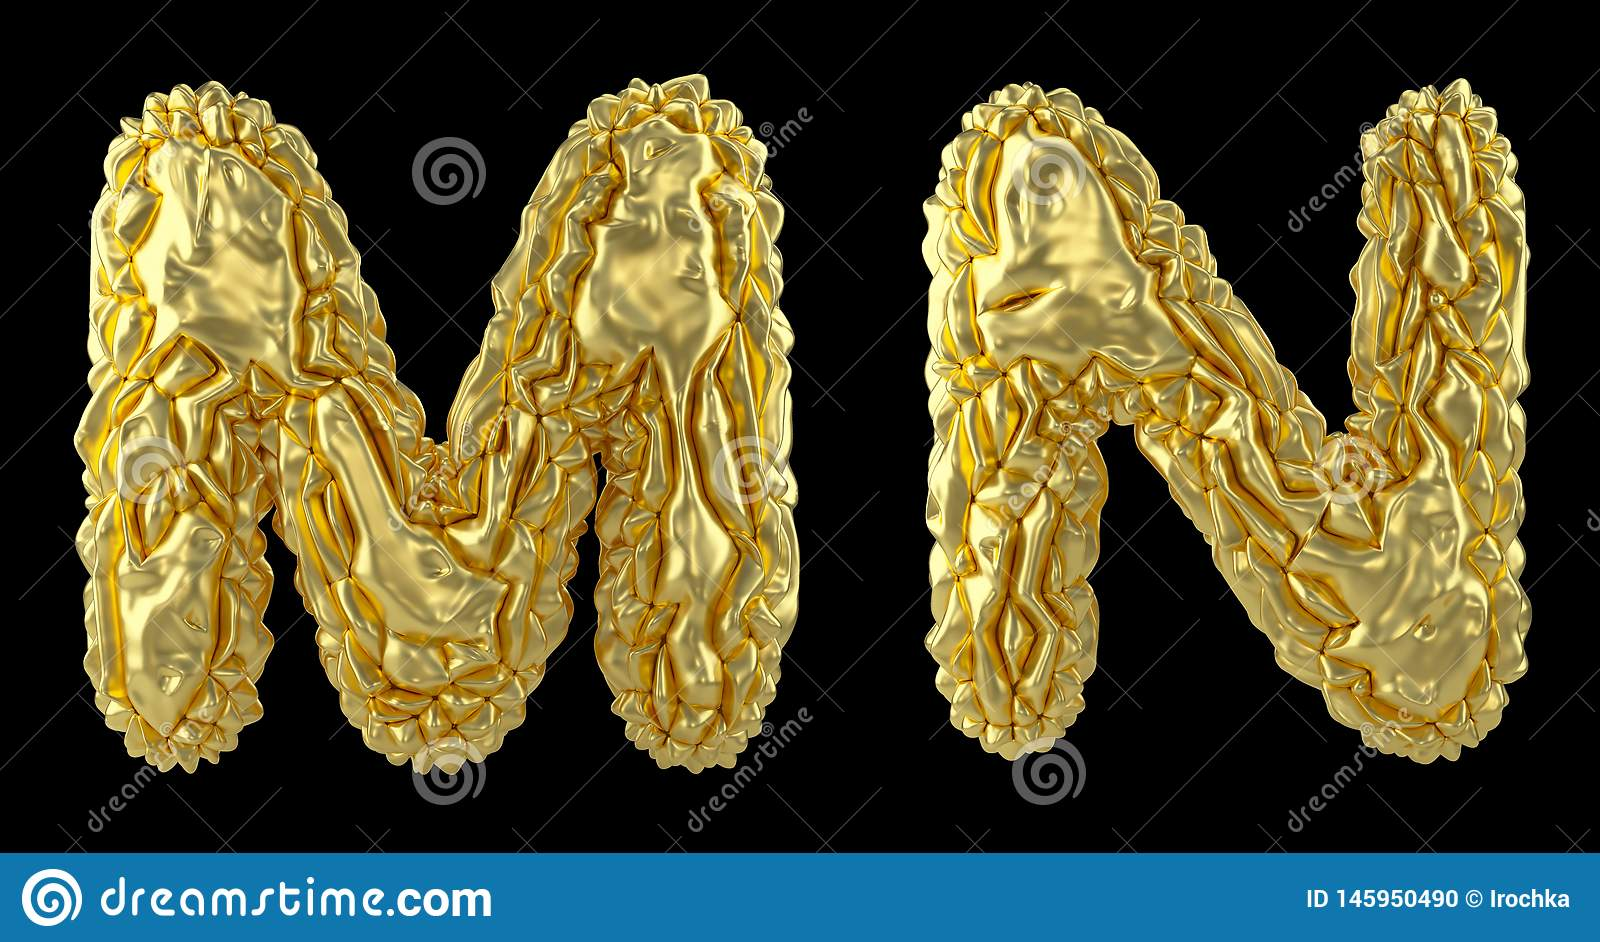 Realistic 3D letters set M, N made of crumpled foil. Collection symbols of crumpled gold foil isolated on black